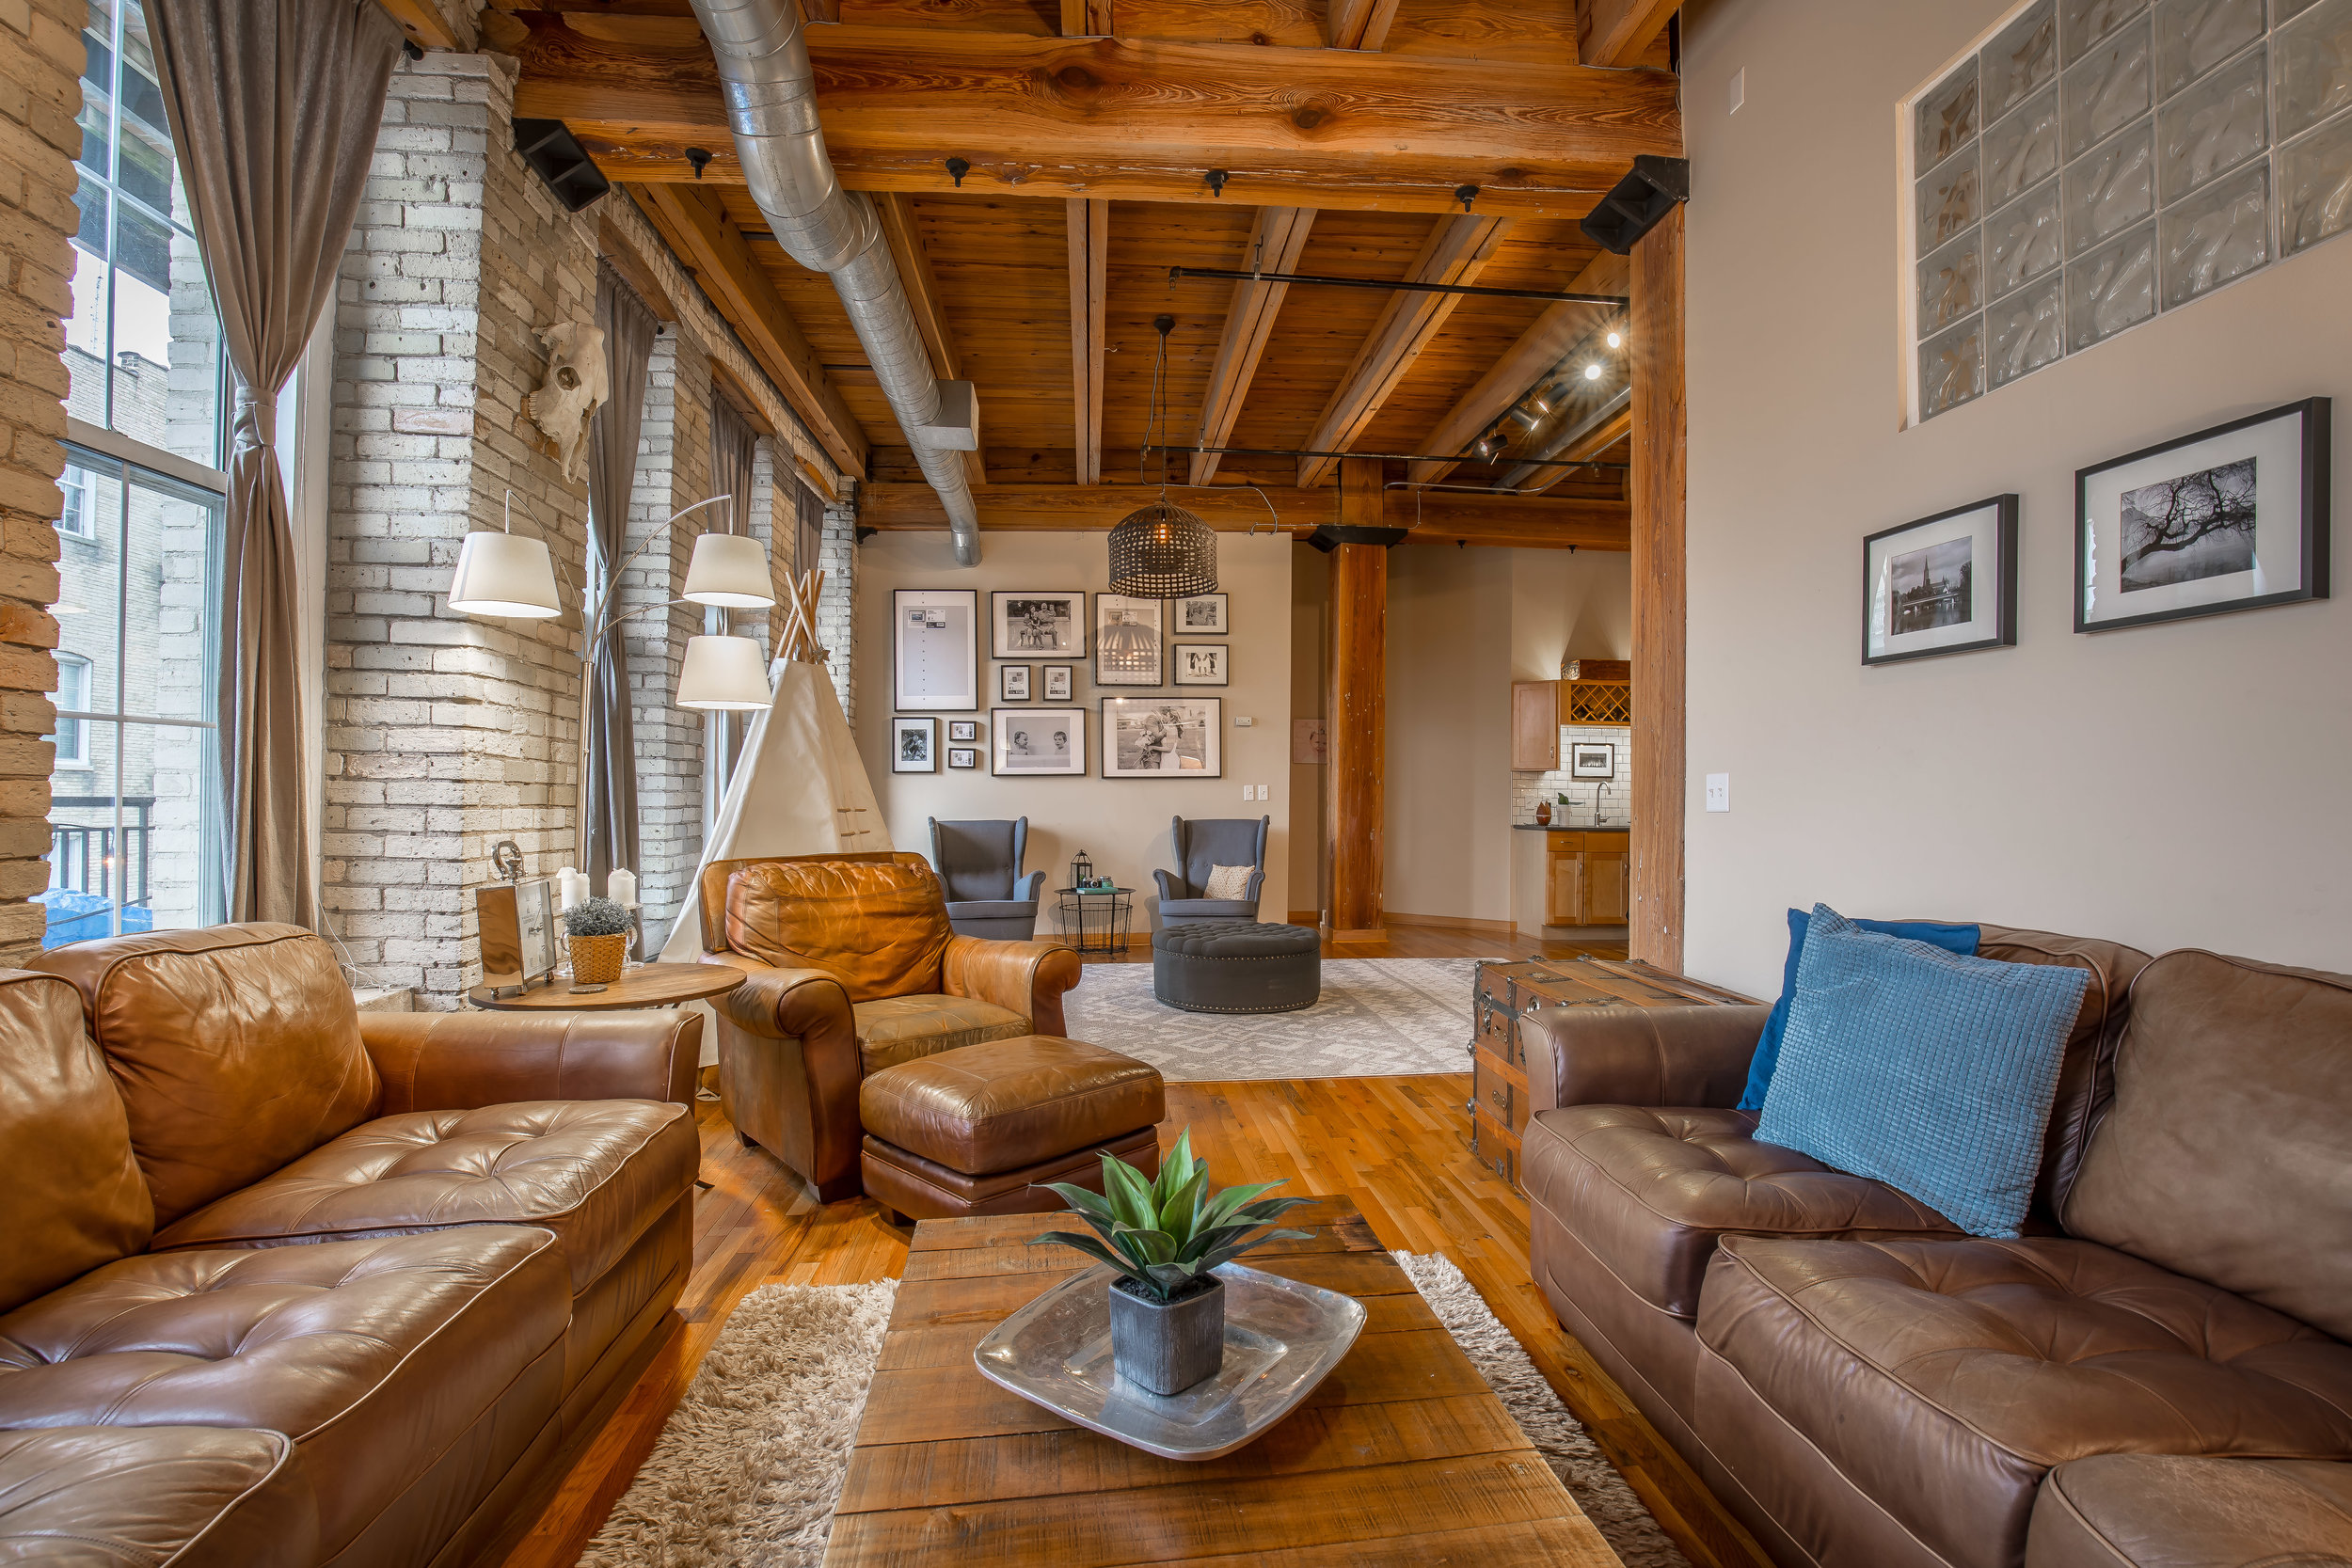 The unit boasts a variety of architectural details including 14 foot ceilings, wood pillars, cream city brick, and exposed duct work & joists. West facing balcony for outdoor enjoyment on warm summer nights